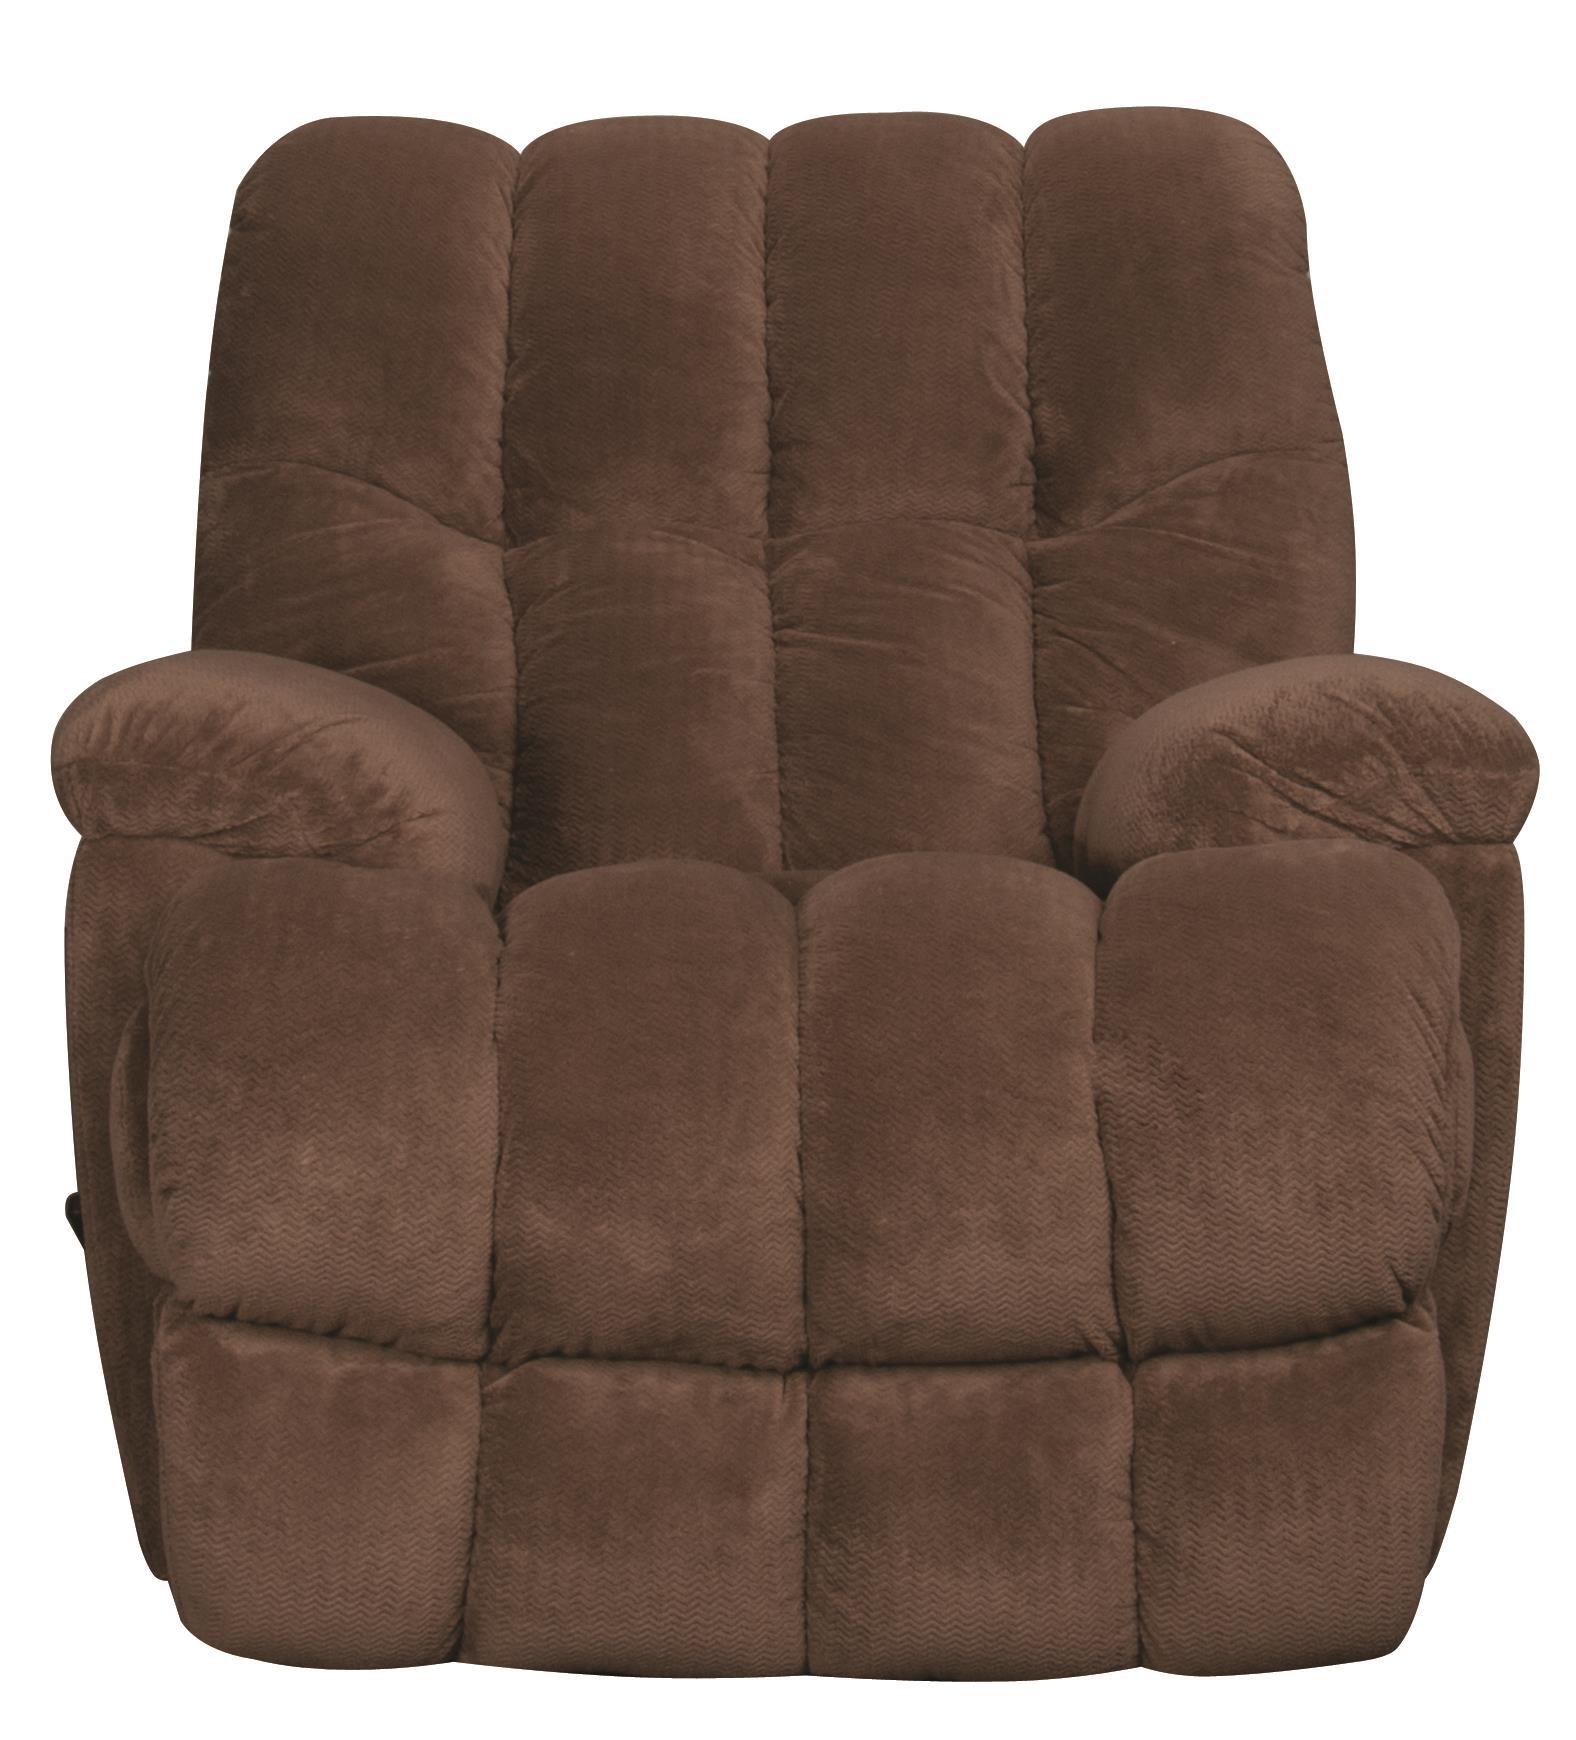 Morris Home Furnishings Kareem Kareem Rocker Recliner - Item Number: 244168680